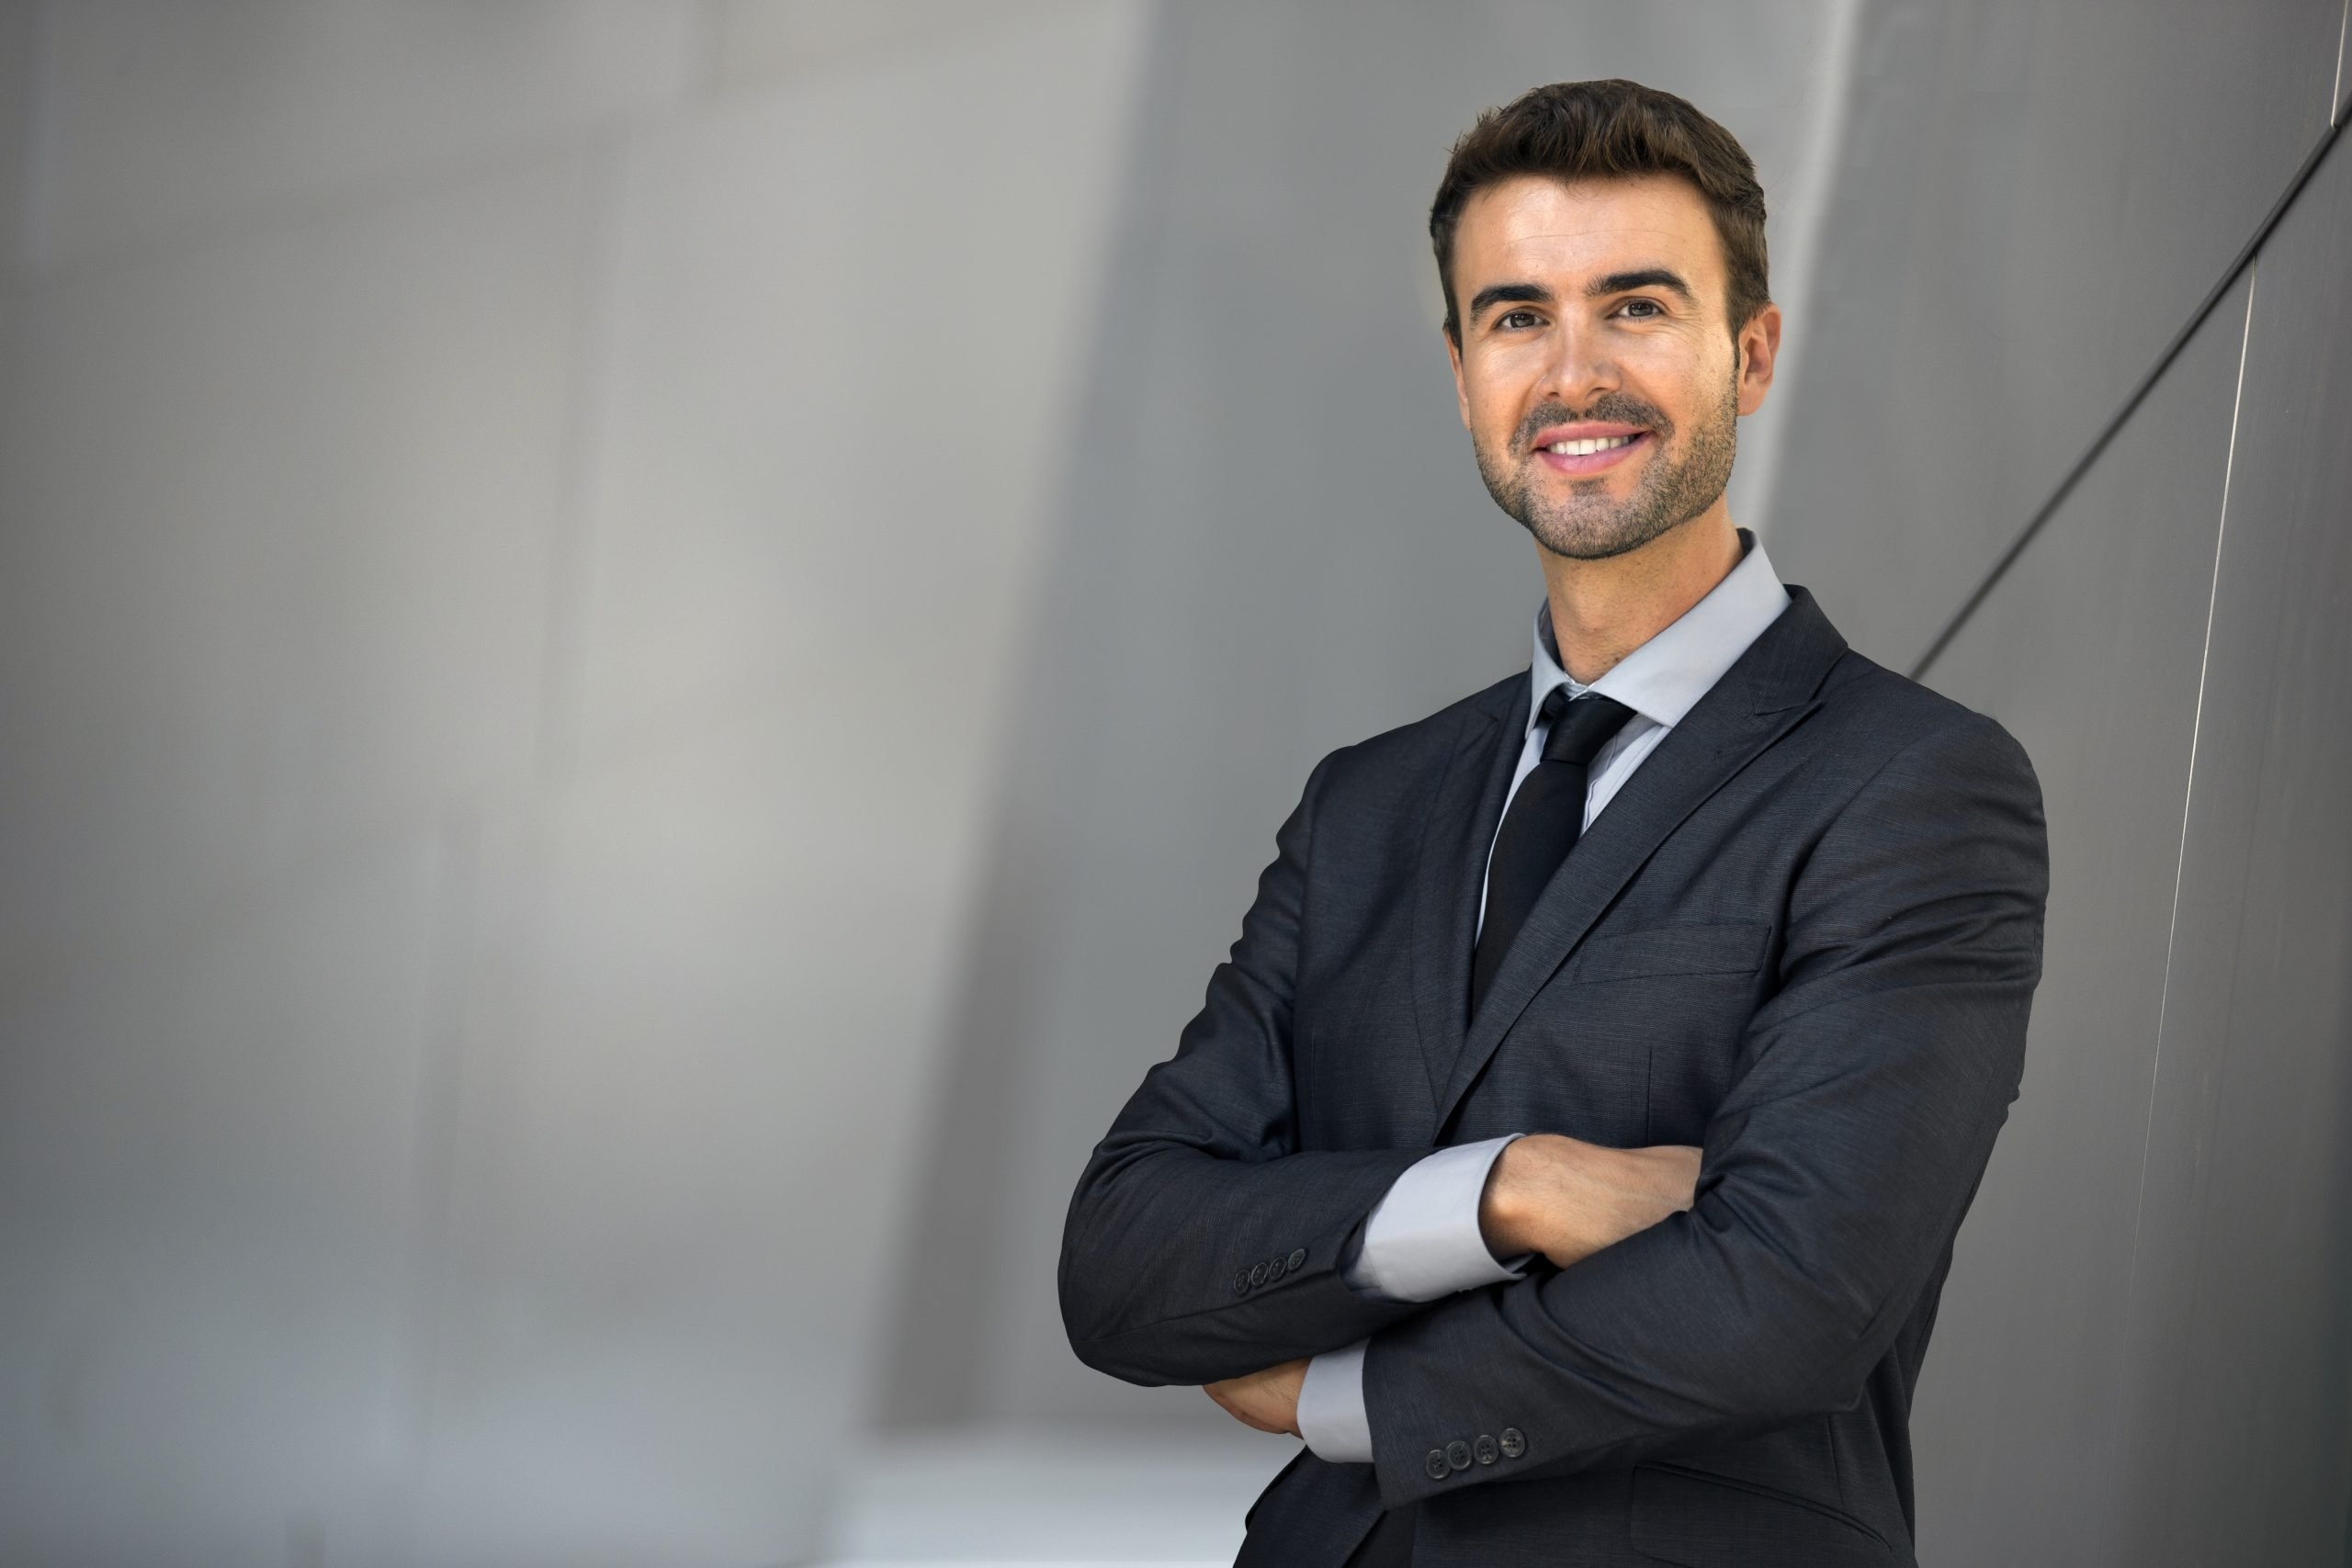 male attorney standing outside and posing for a photo with arms crossed